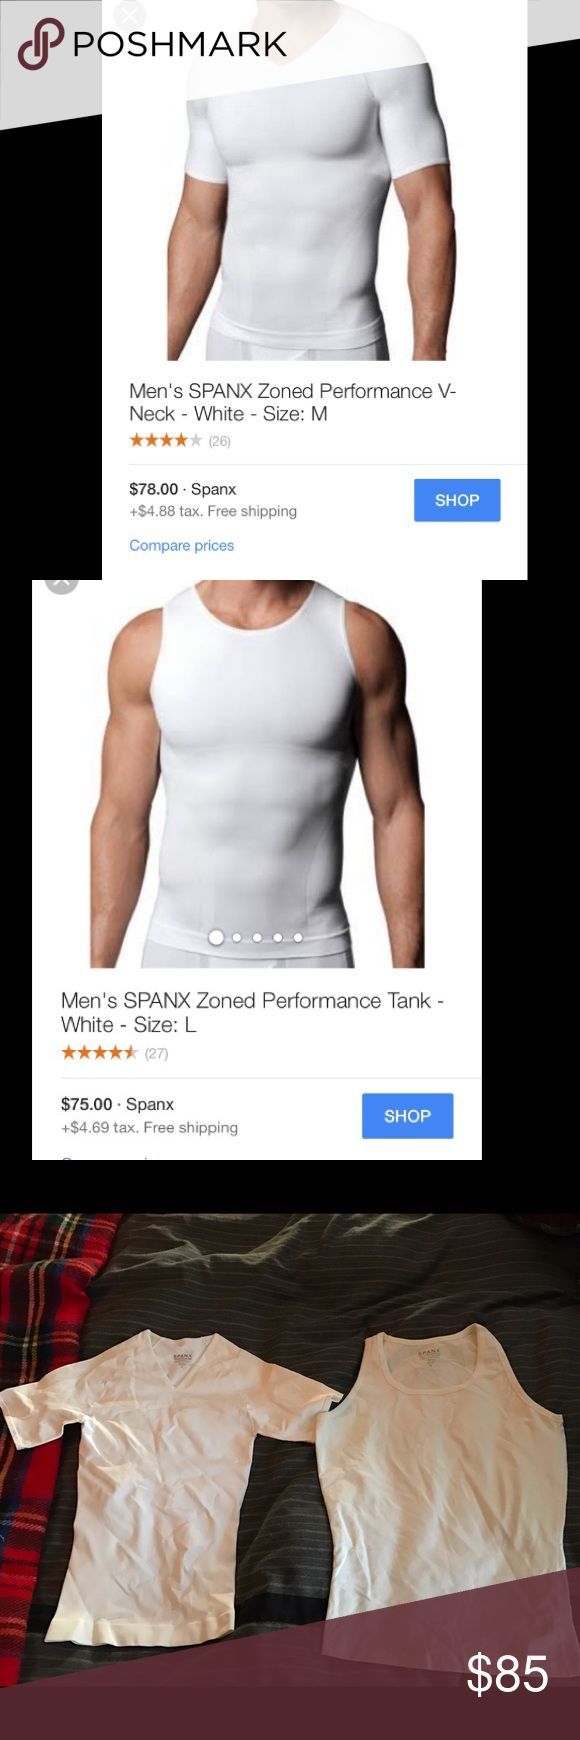 Men's spanx tank and shirt Men's Size Large spanx tank and t shirt. Tshirt never worn. Tank worn once. Laundered sold as a pair SPANX Underwear & Socks Undershirts